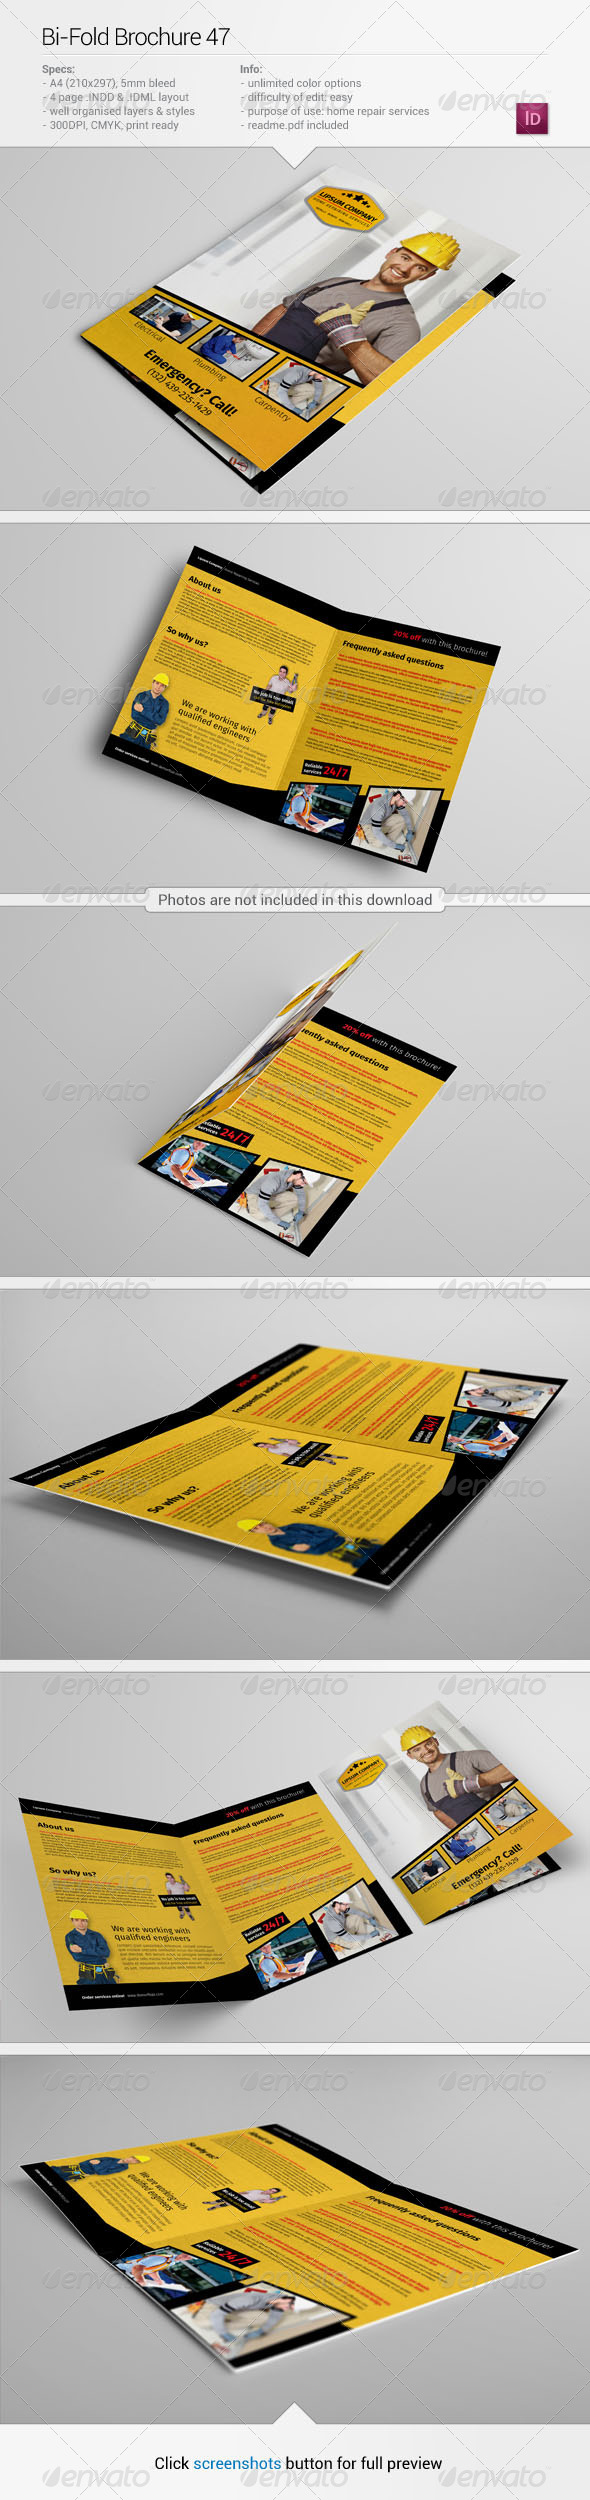 GraphicRiver Bi-Fold Brochure 47 6307082